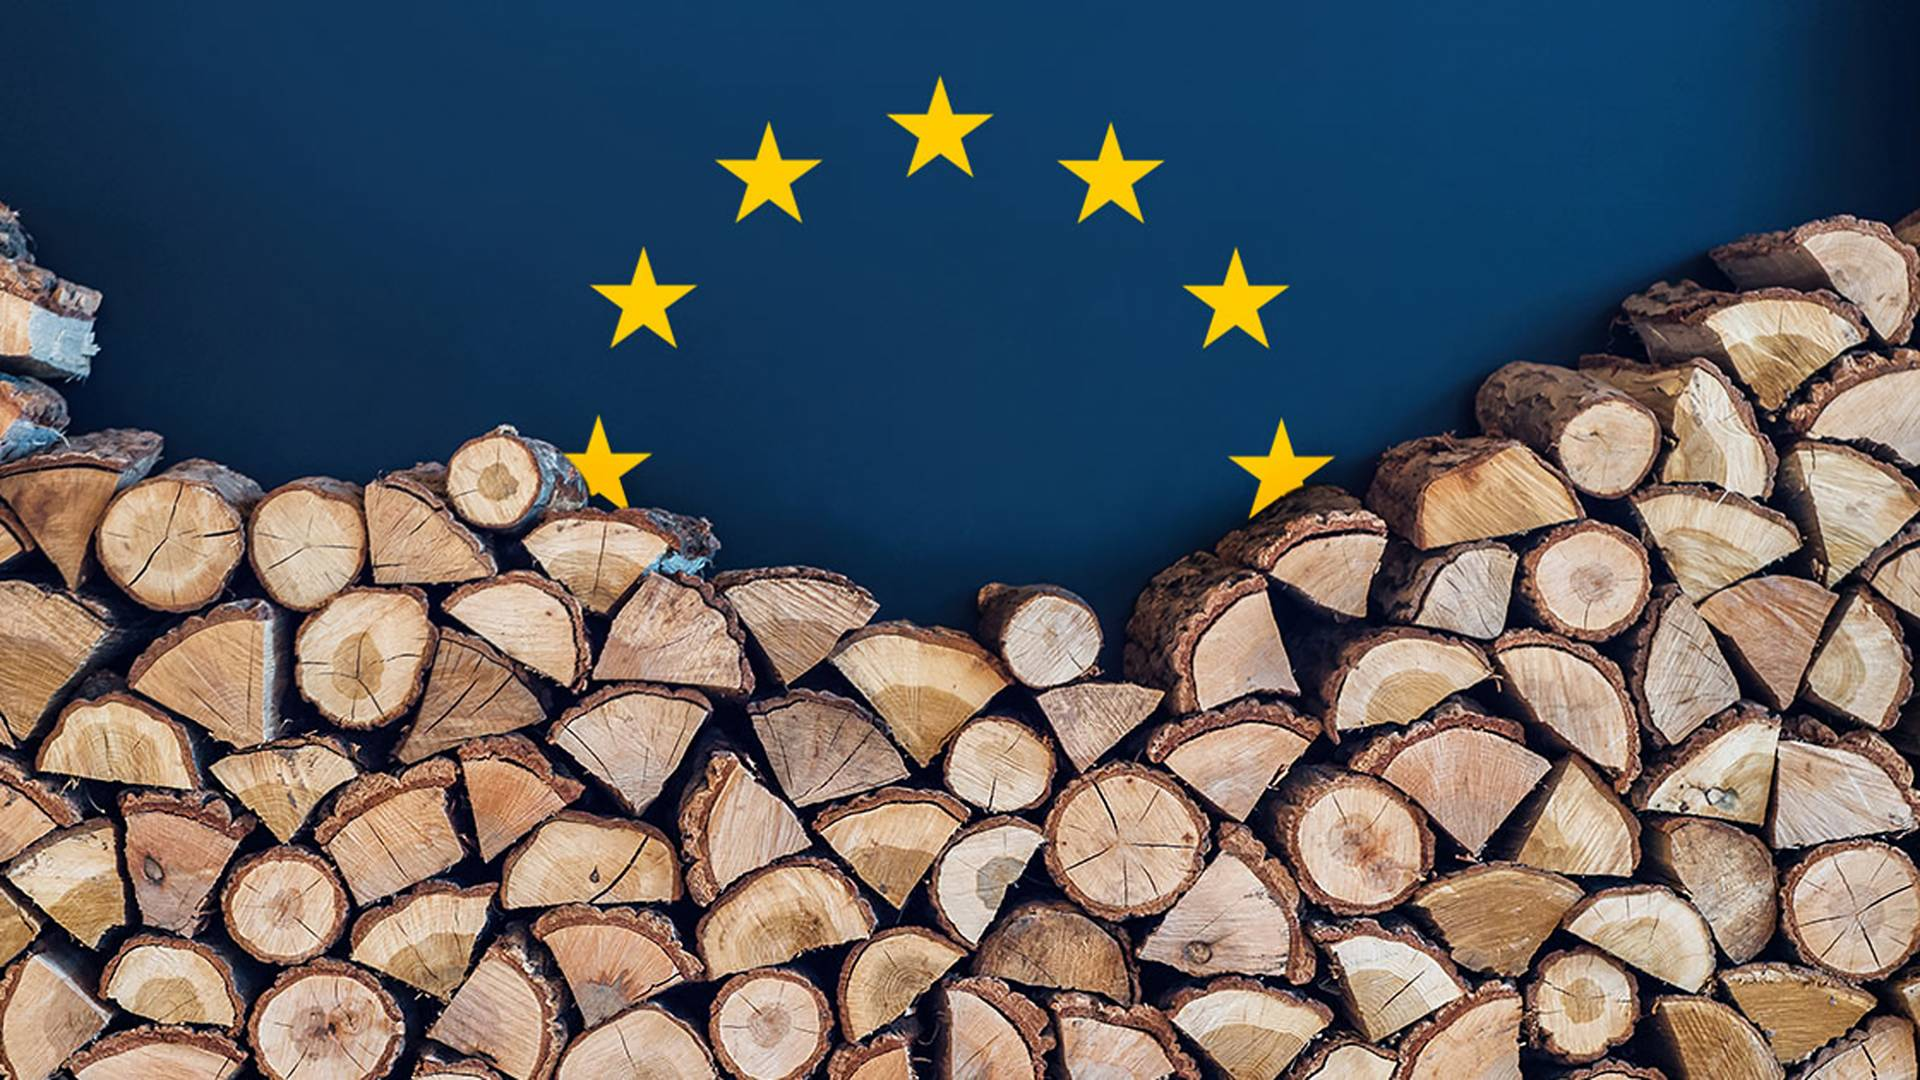 Chopped wood in a pile in front of the flag of Europe